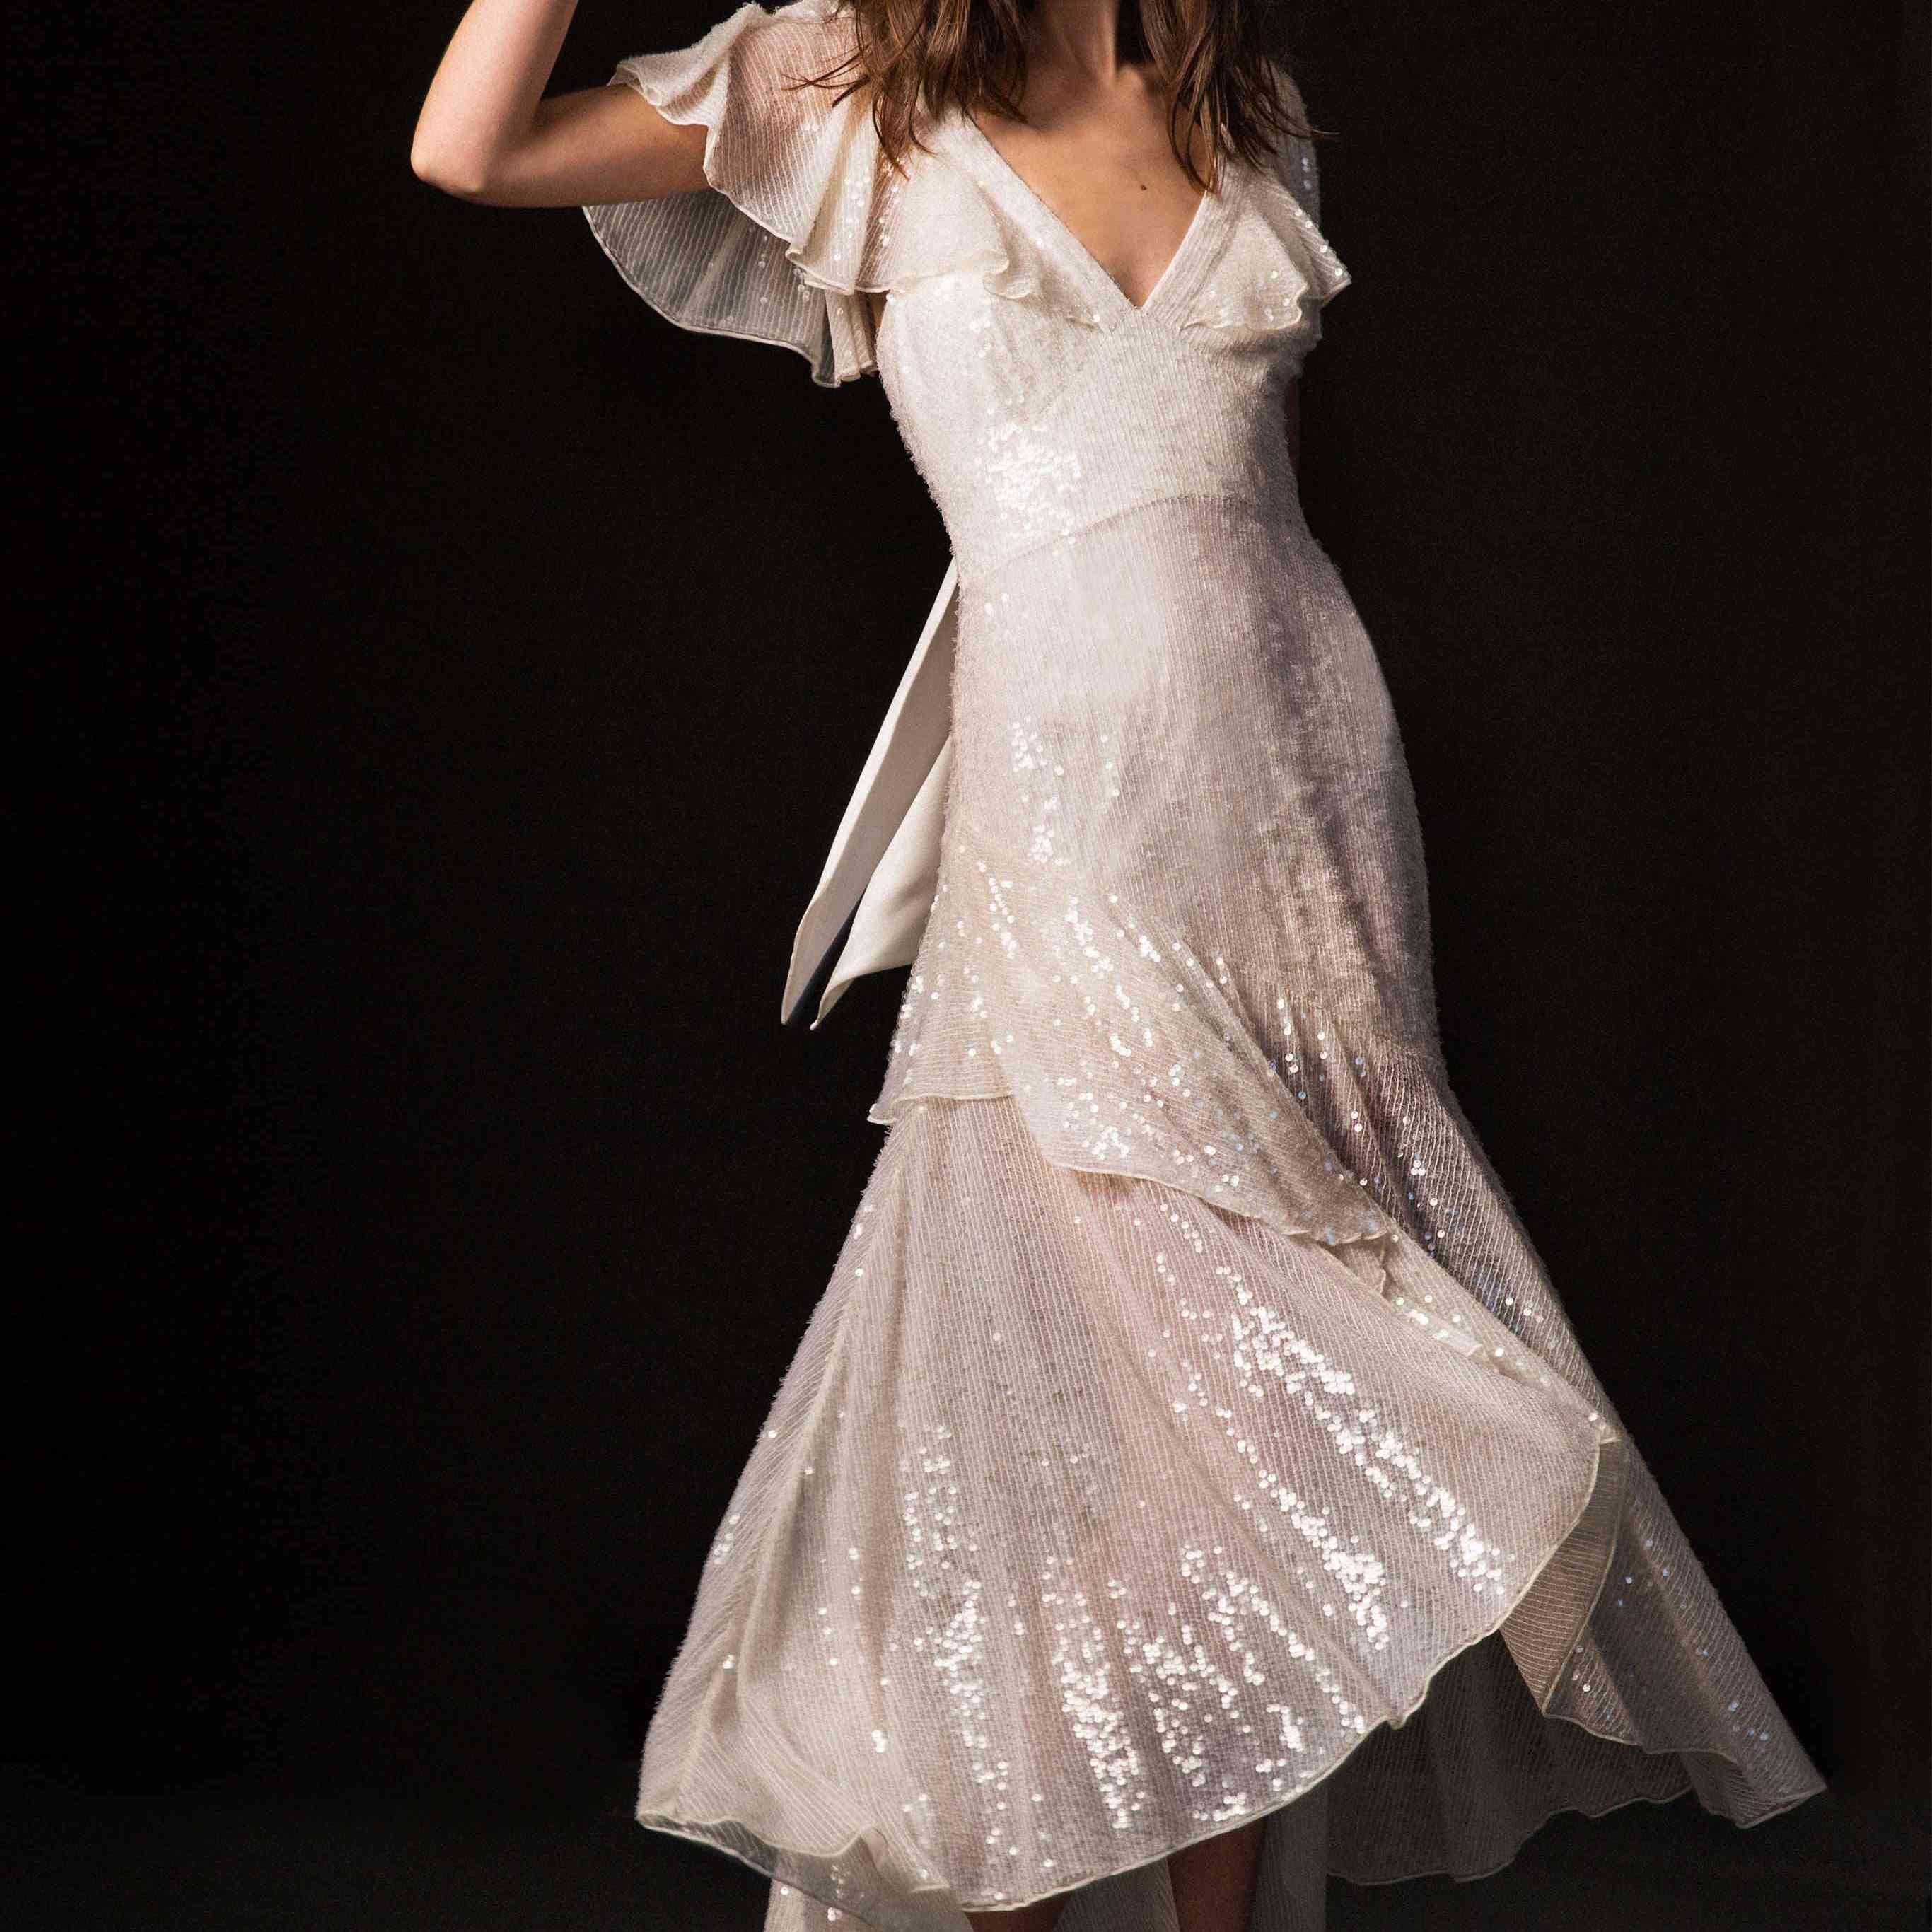 Model in sequined gown with a V neck, flutter sleeves, and asymmetrical hemline